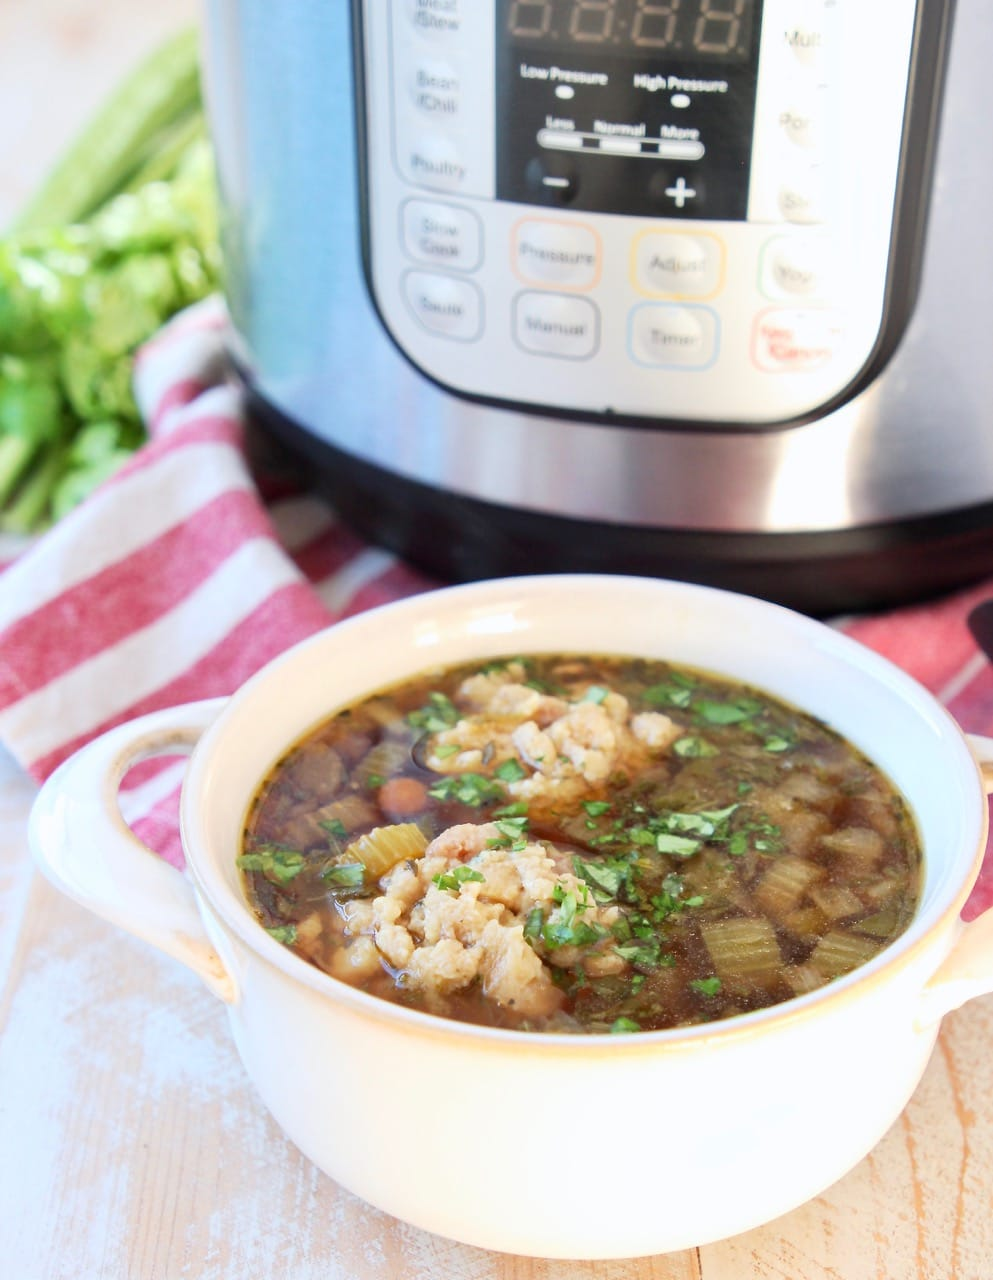 Instant Pot Turkey Soup in white crock with Instant Pot in background sitting on red and white striped towel with fresh celery stalks on the side